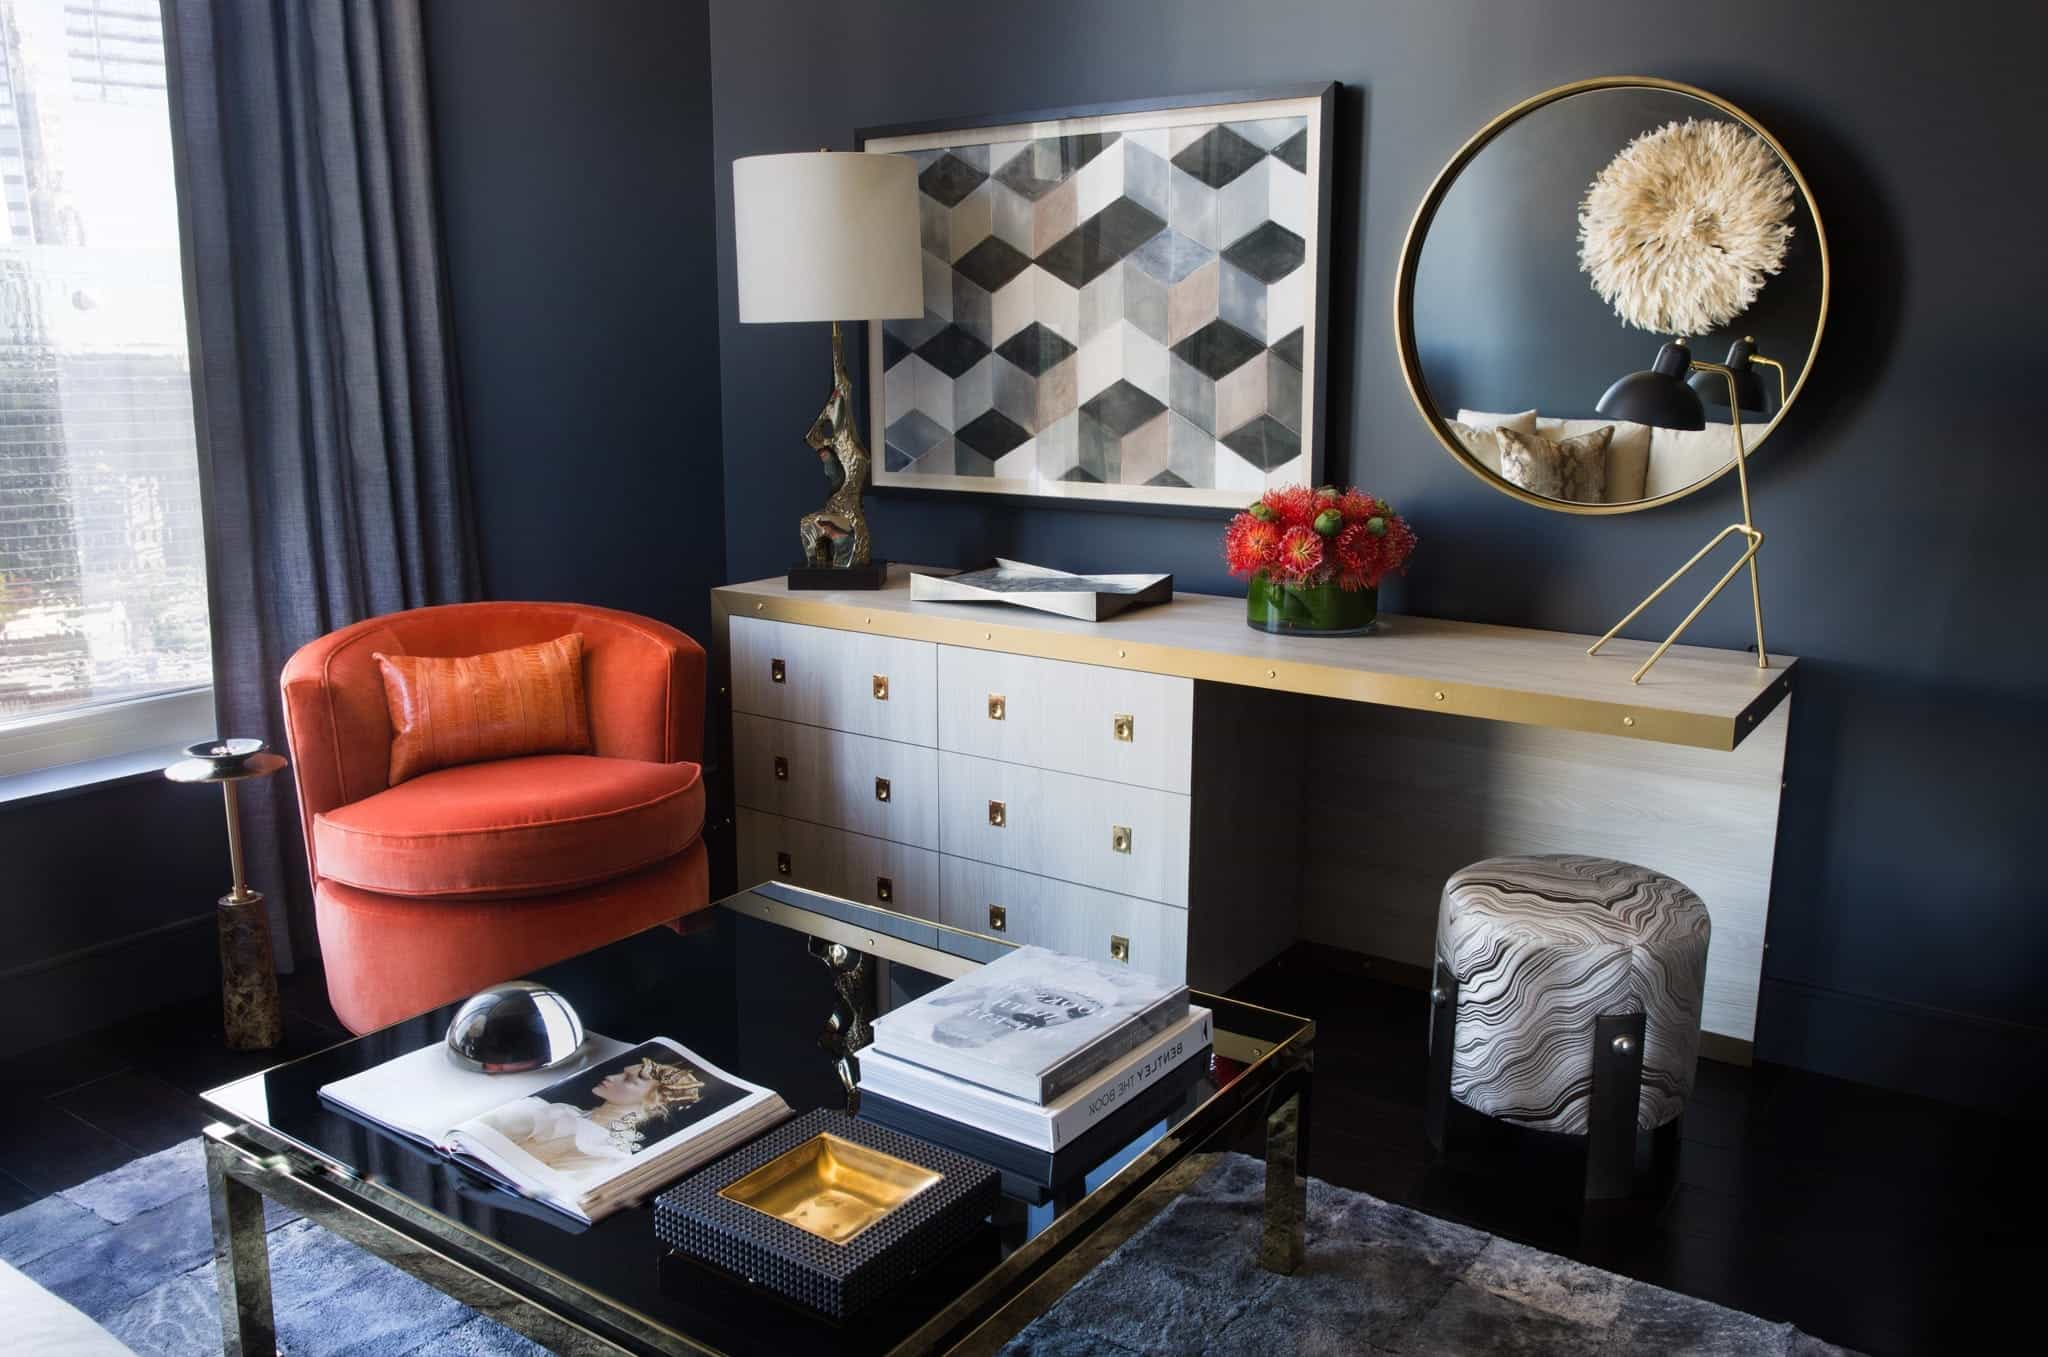 Chic Coffee Table In Atlanta Condo (Image 8 of 32)